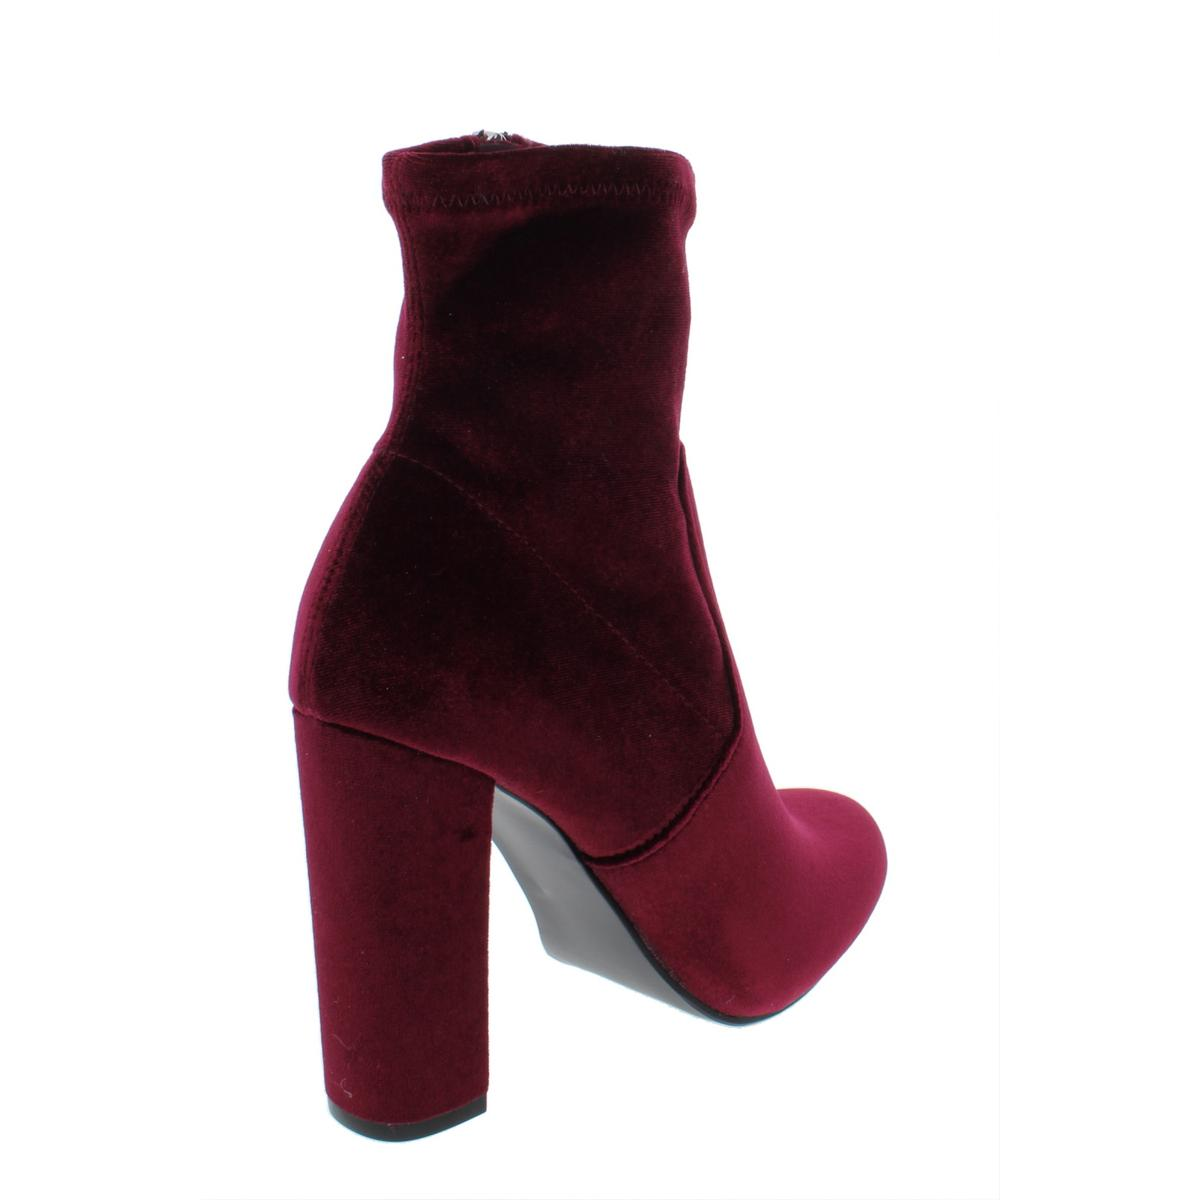 6dccec62a4dc Details about Steve Madden Womens Edit Red Velvet Ankle Boots Shoes 7  Medium (B